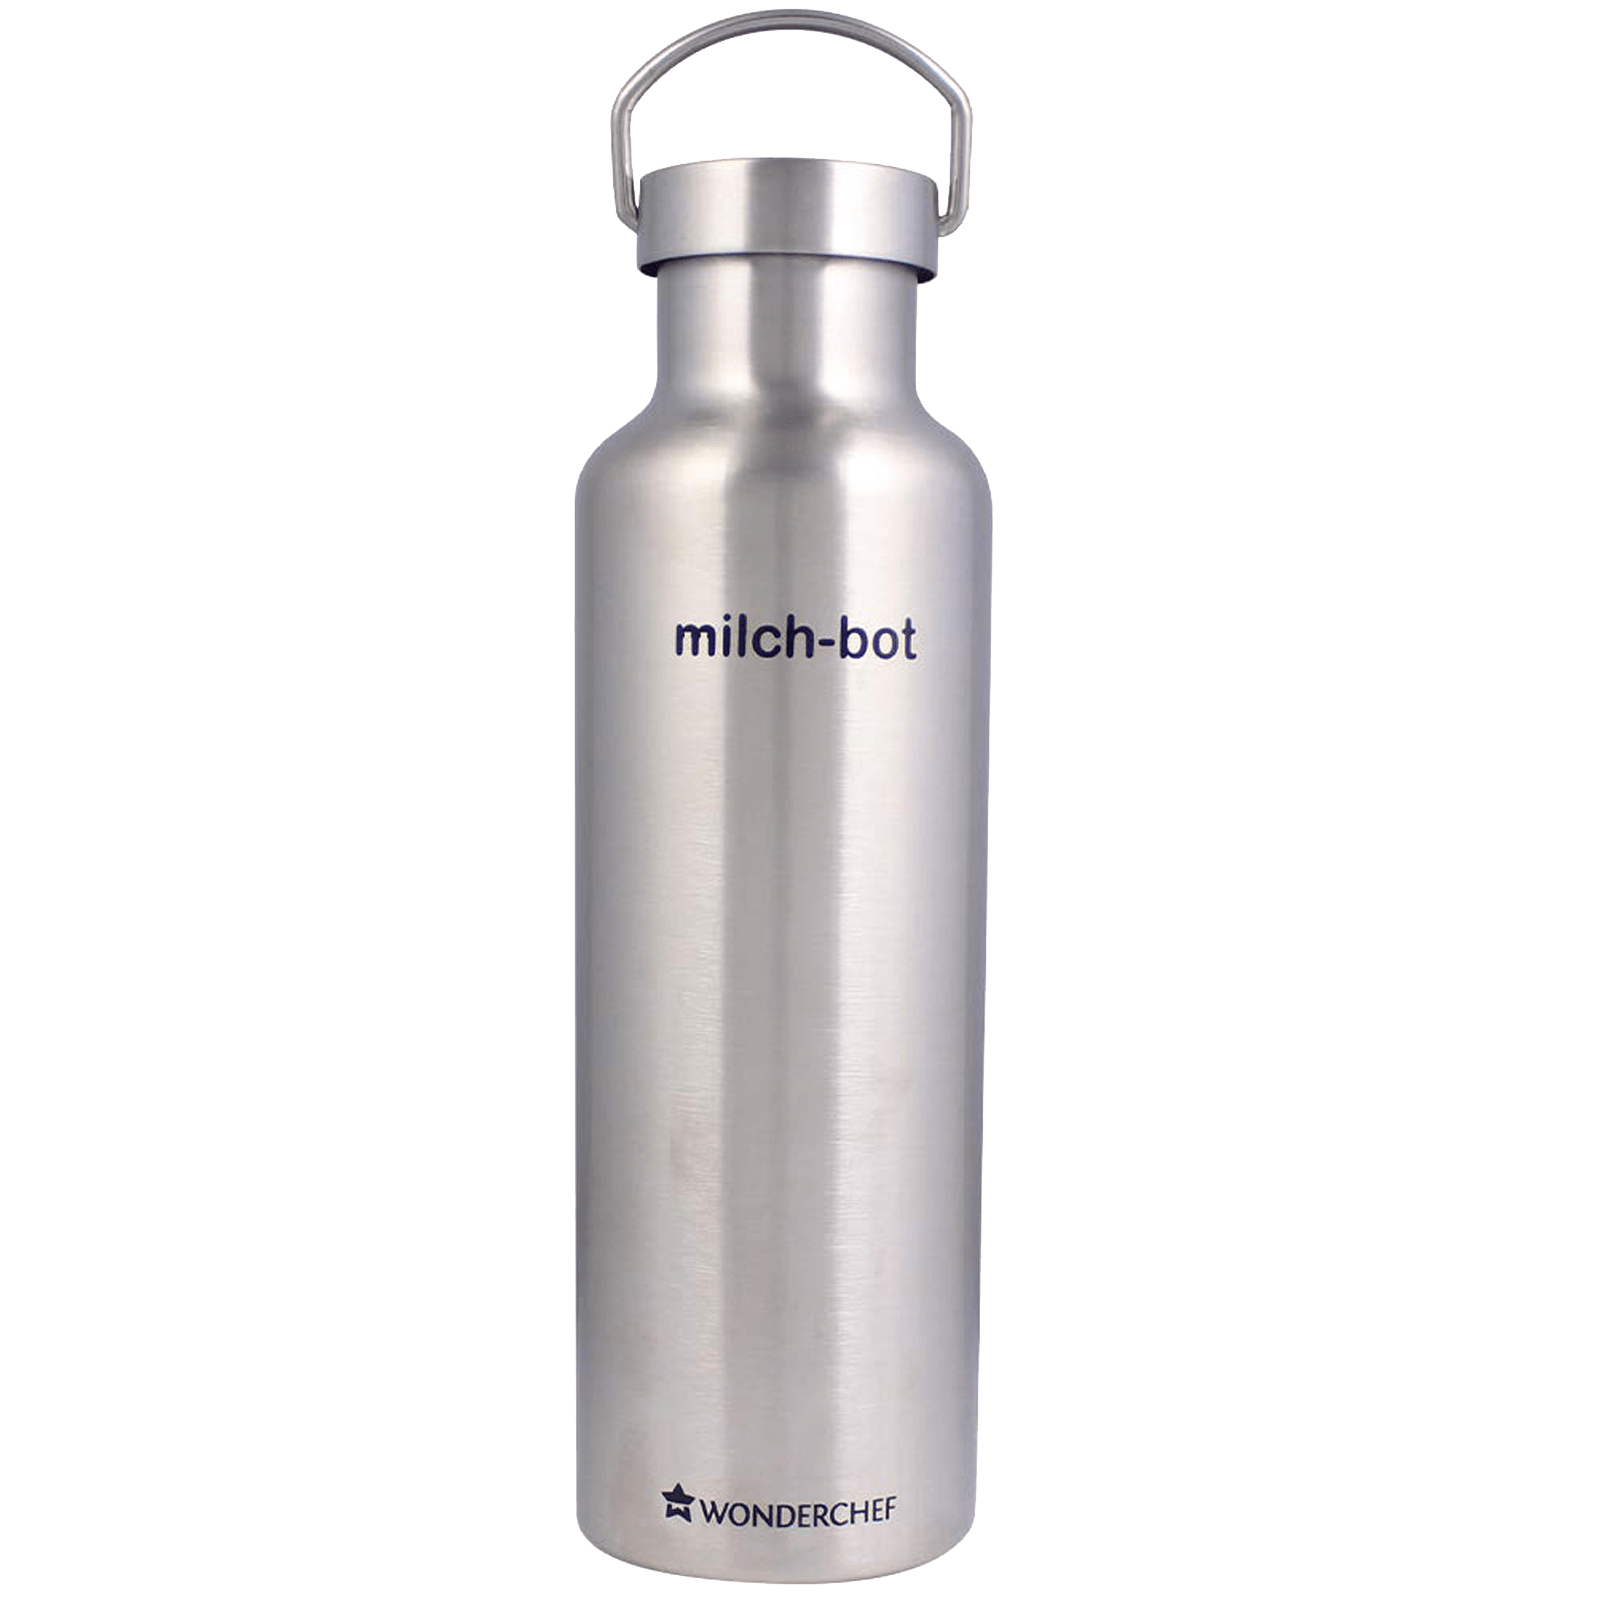 Wonderchef Milch-Bot 0.75 Litres Stainless Steel Water Bottle (Vacuum Insulated, 63153234, Silver)